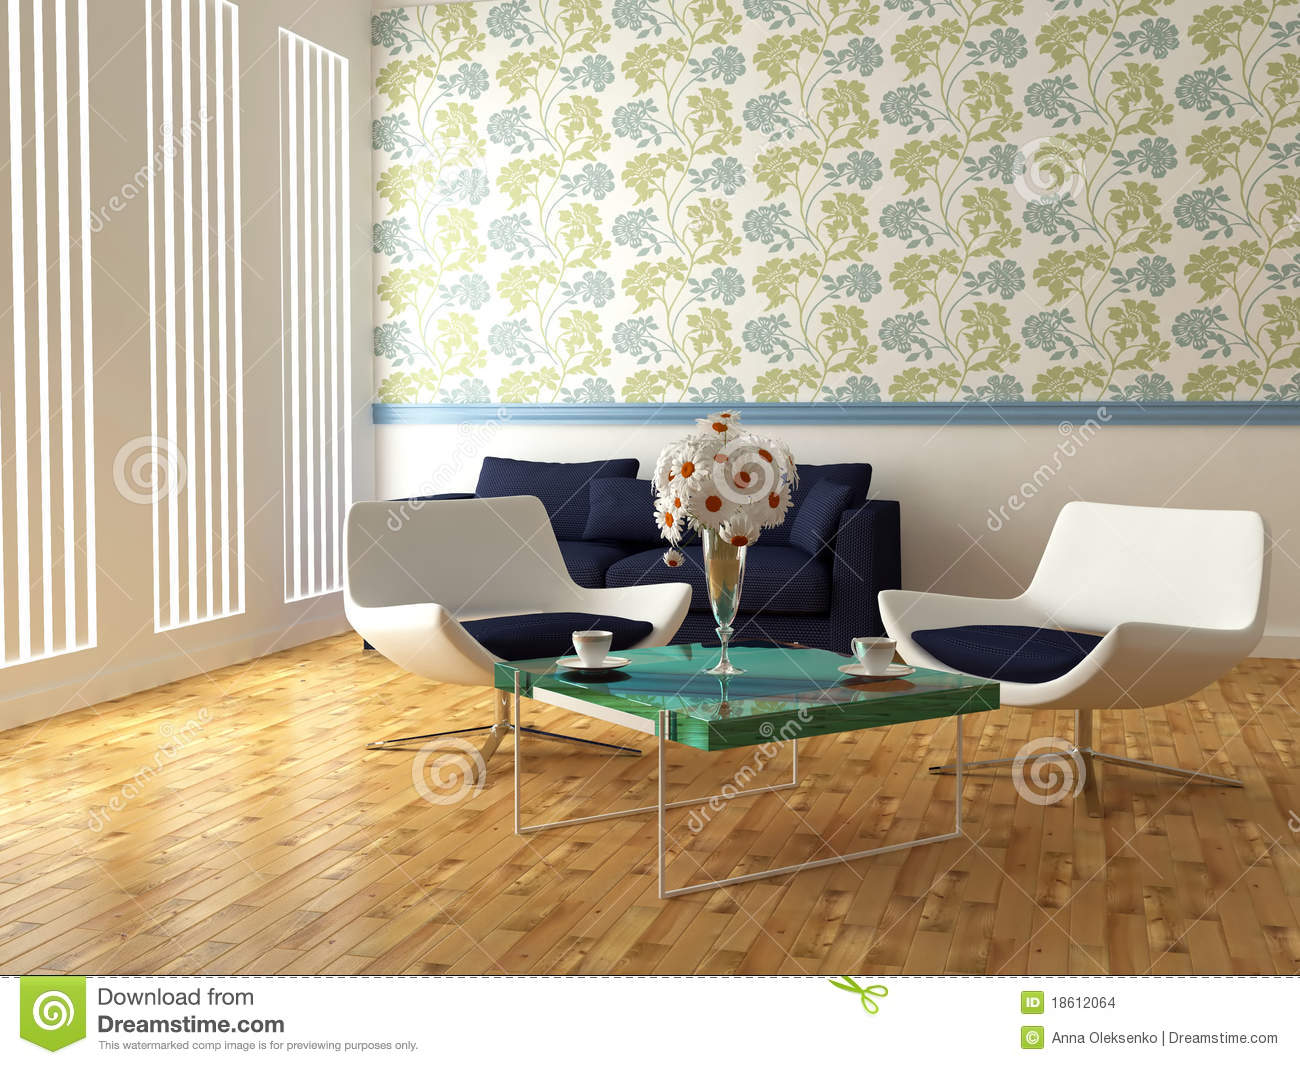 Bright interior design of modern living room royalty free for Design my room online interior decorating